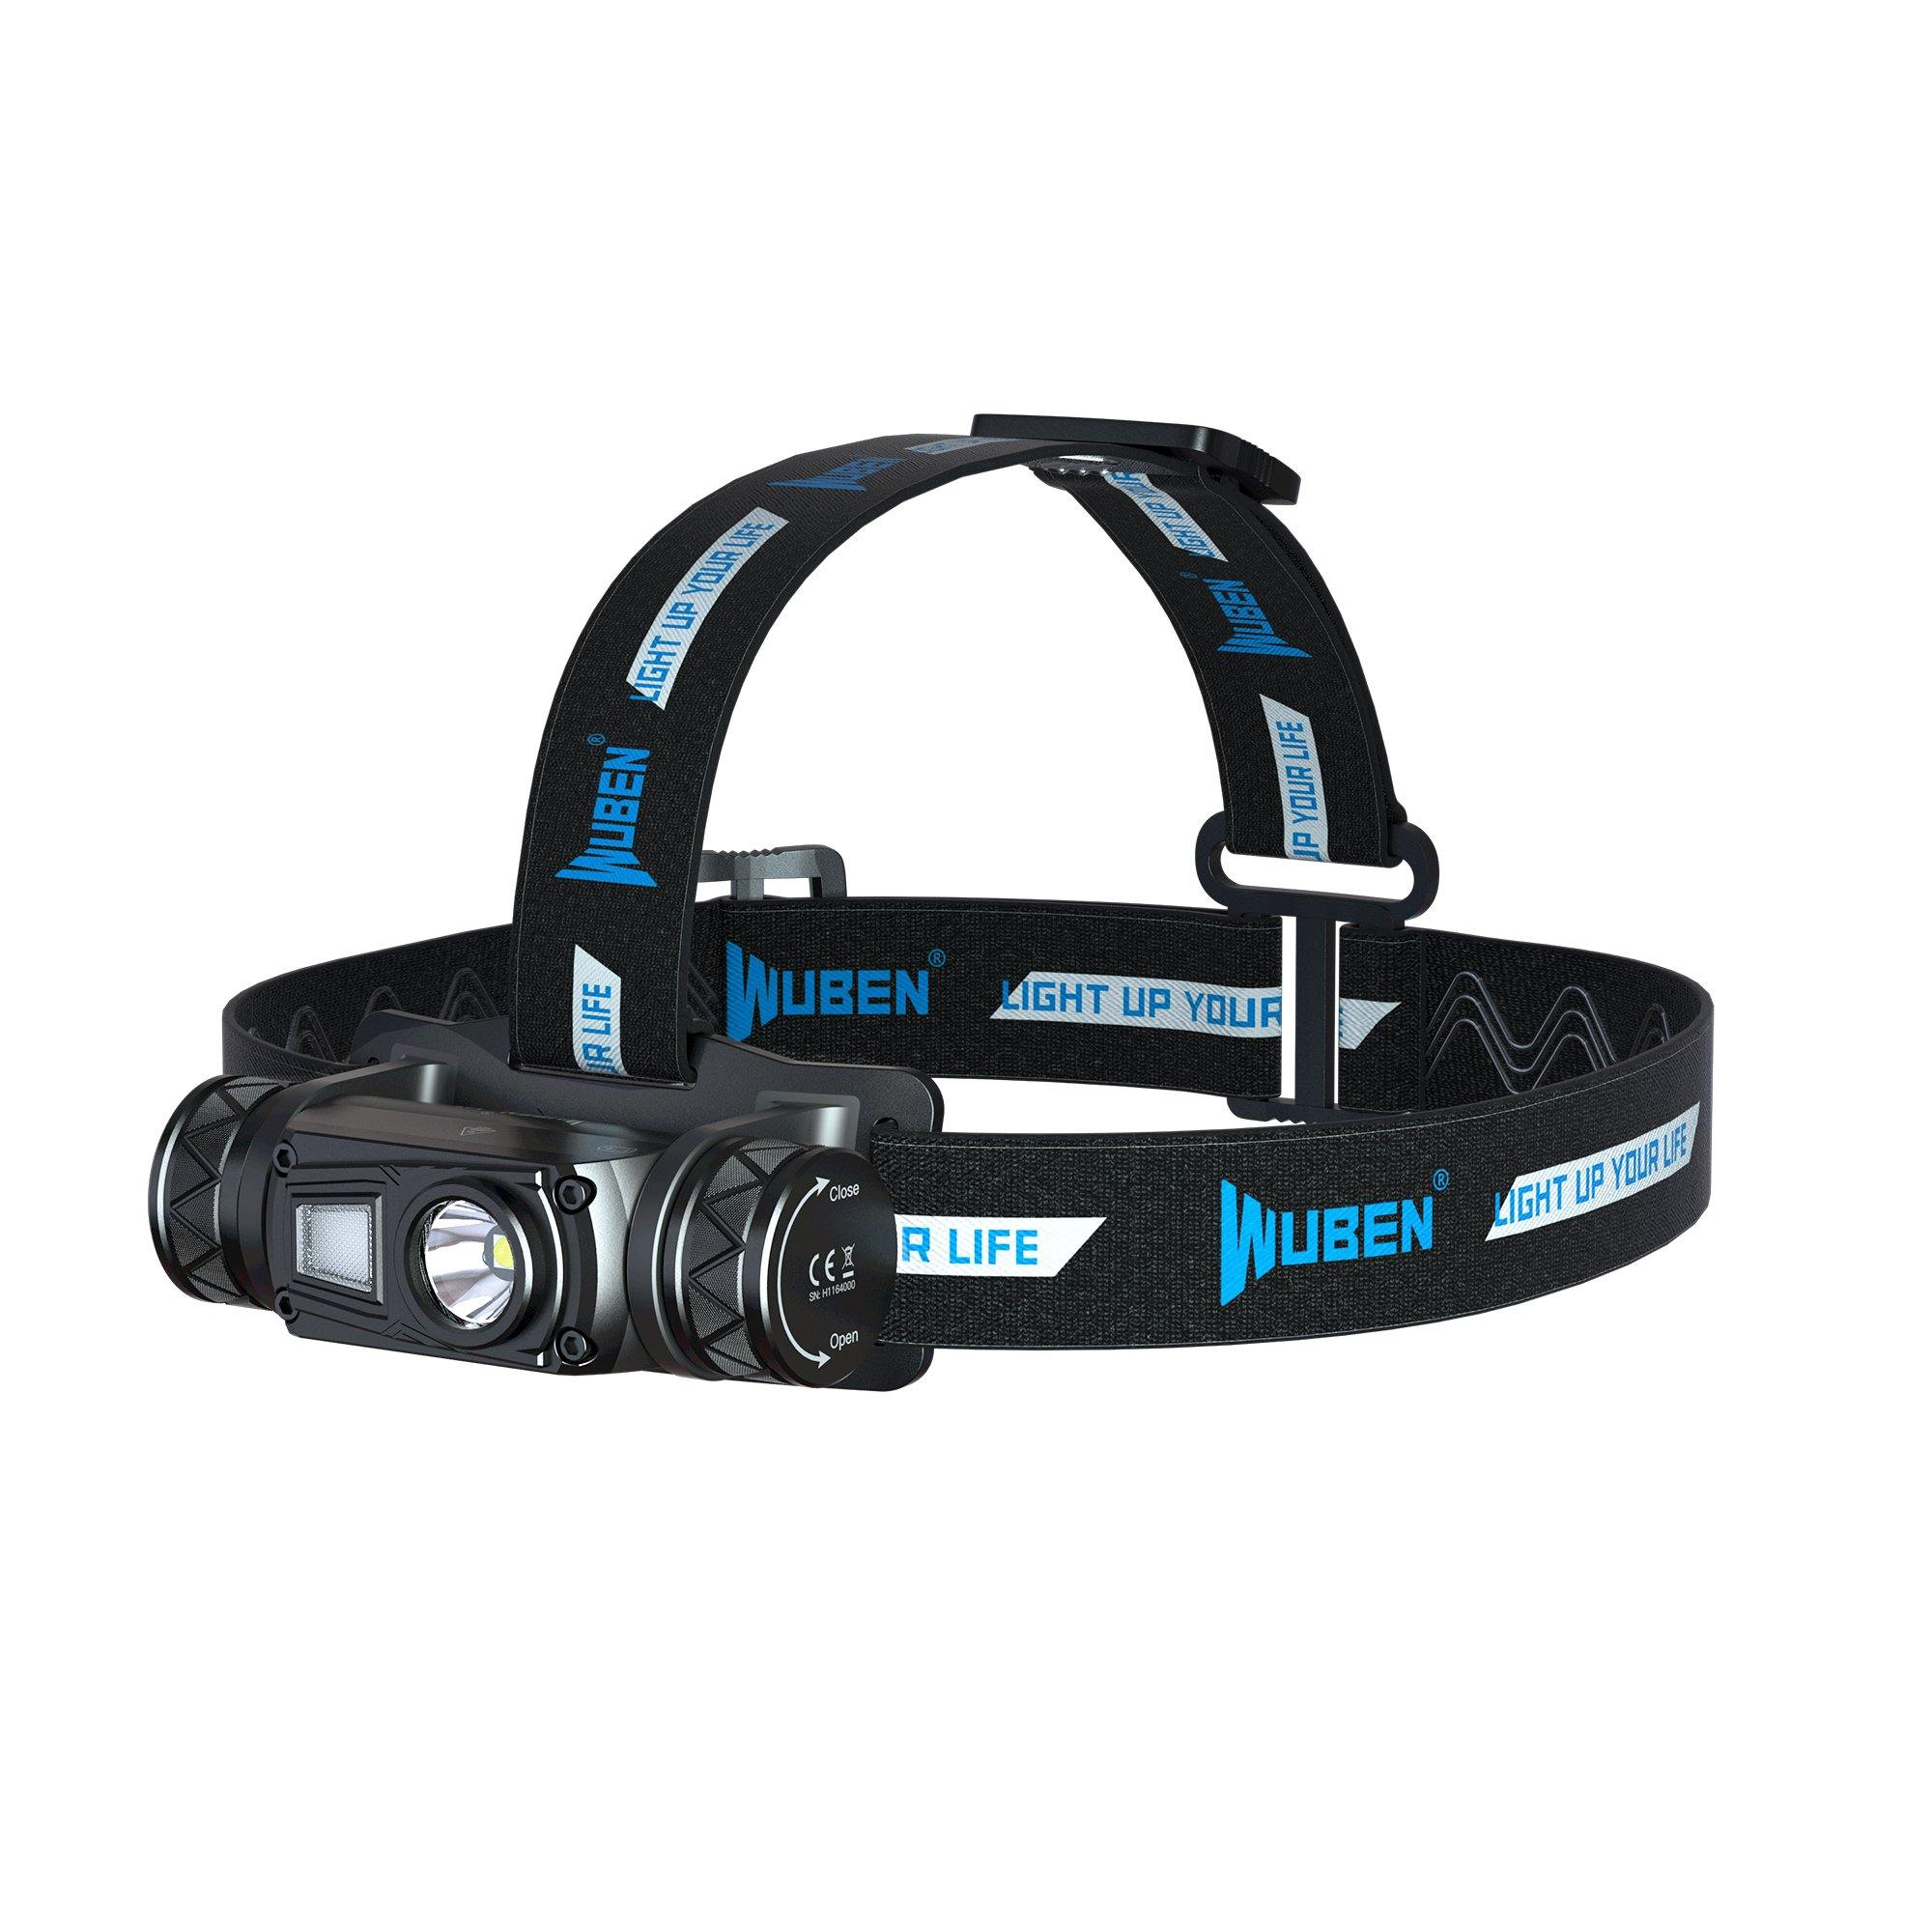 WUBEN H1 LED Headlamp Super Bright 1200 Lumens 18650 Battery USB Rechargeable IP68 Waterproof Portable Headlamp